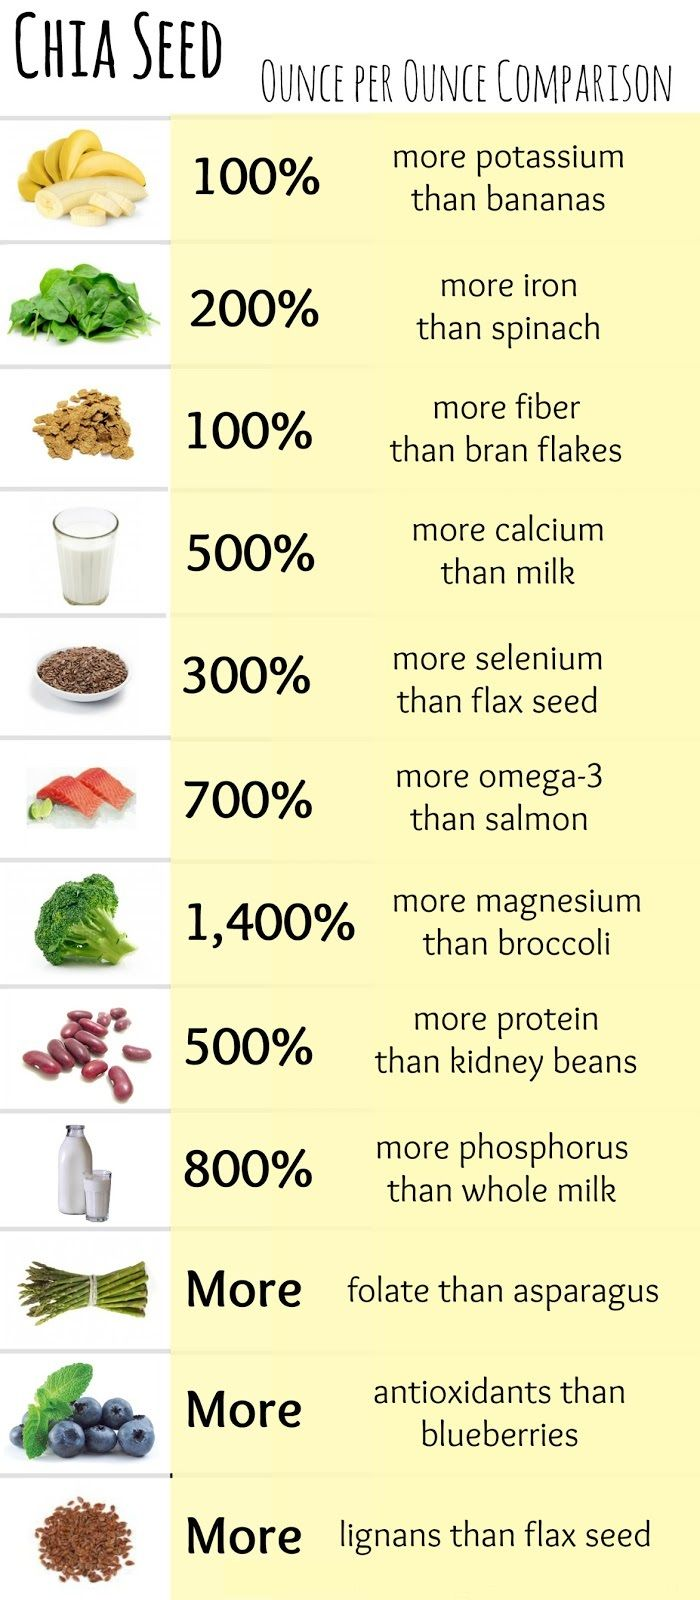 Chia Seeds - A Super Food!^^^ must try to use more more more